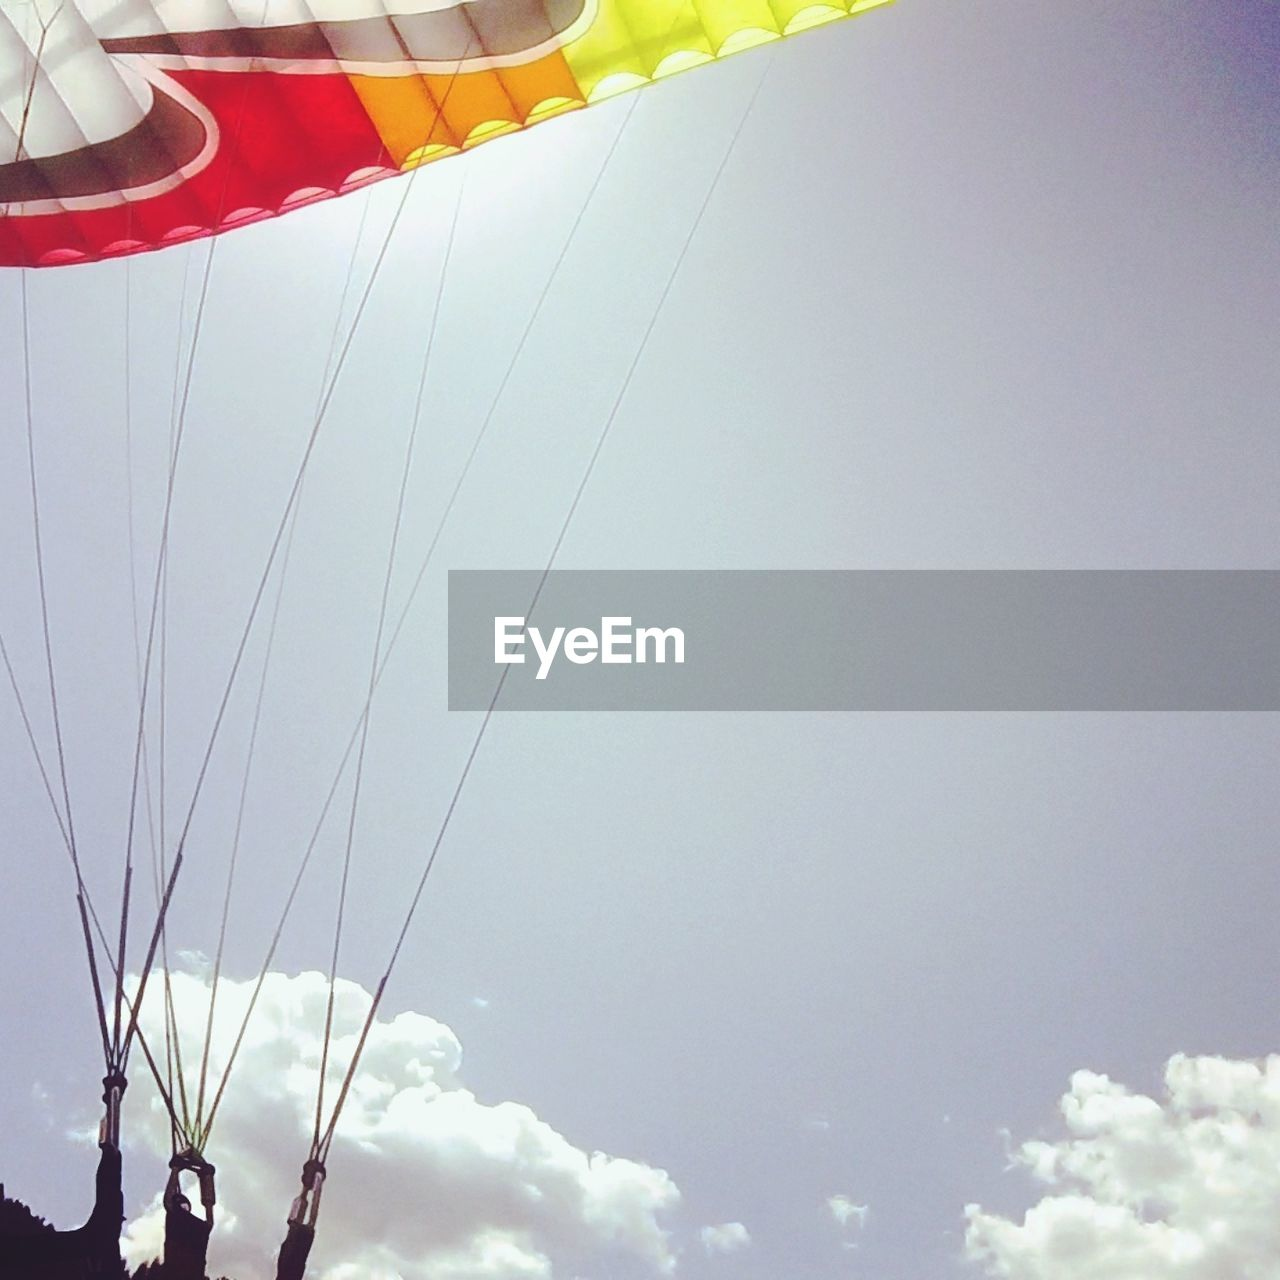 sky, low angle view, cloud - sky, nature, day, no people, outdoors, amusement park ride, arts culture and entertainment, amusement park, flying, adventure, mid-air, chain swing ride, leisure activity, parachute, freedom, copy space, transportation, sunlight, excitement